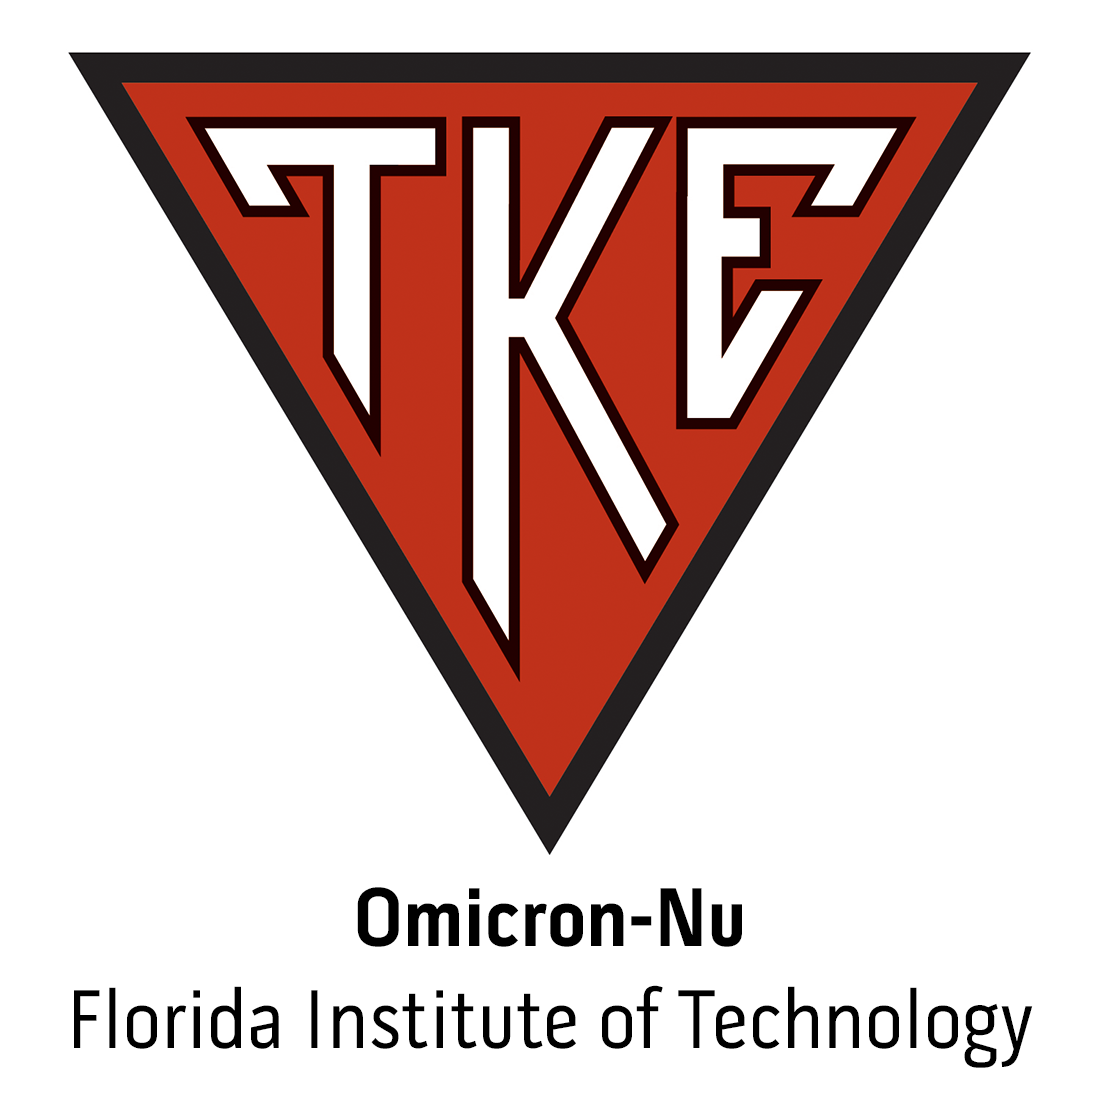 Omicron-Nu C at Florida Institute of Technology